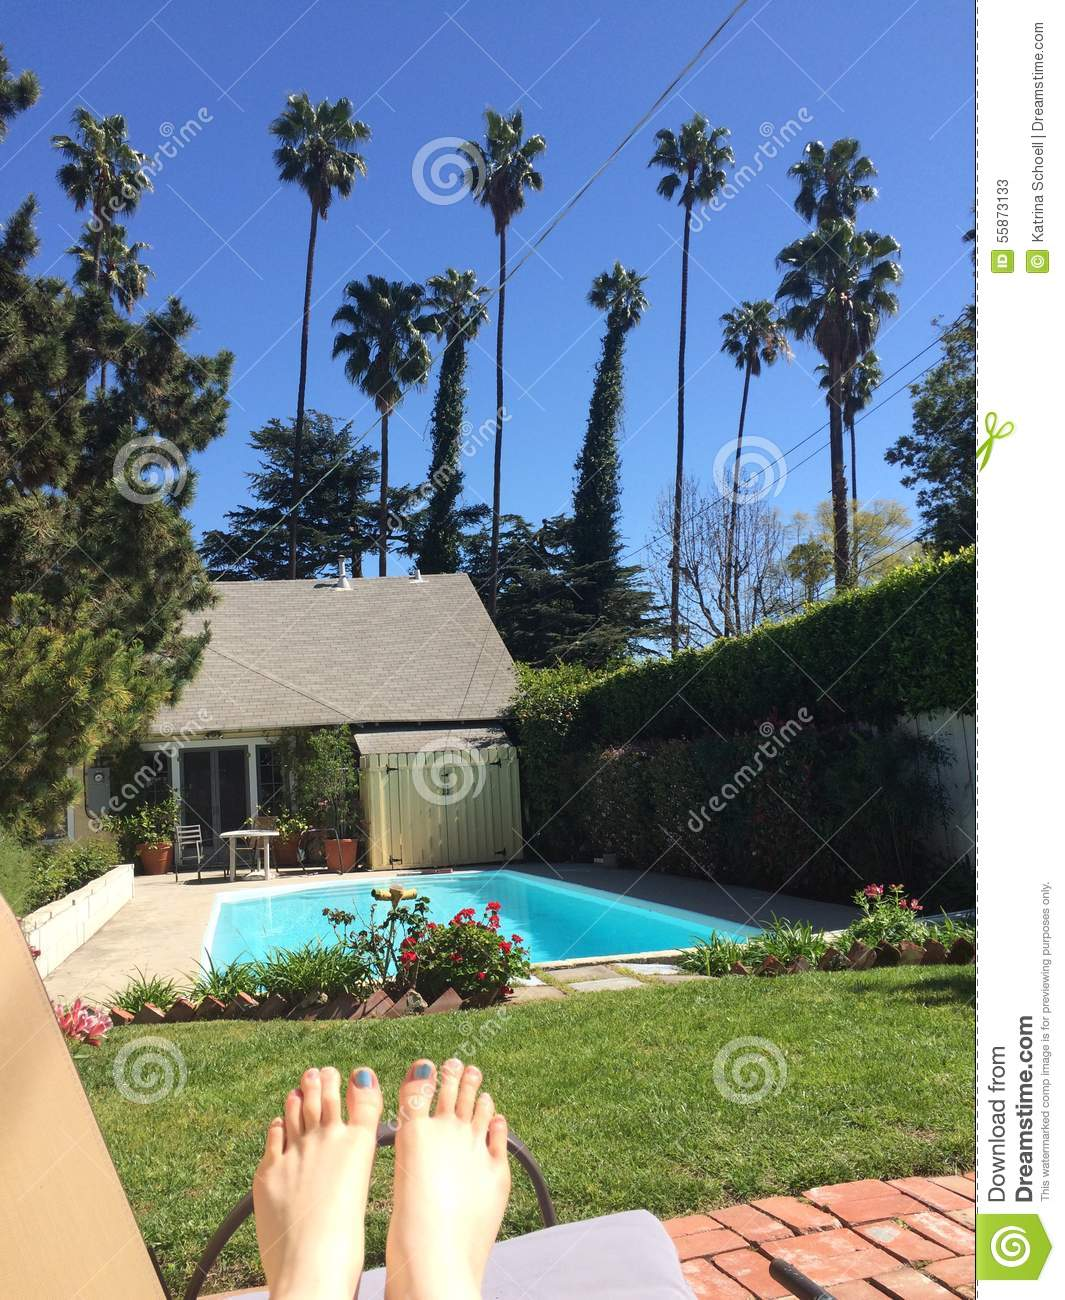 Tanning by the pool stock image. Image of backyard ...